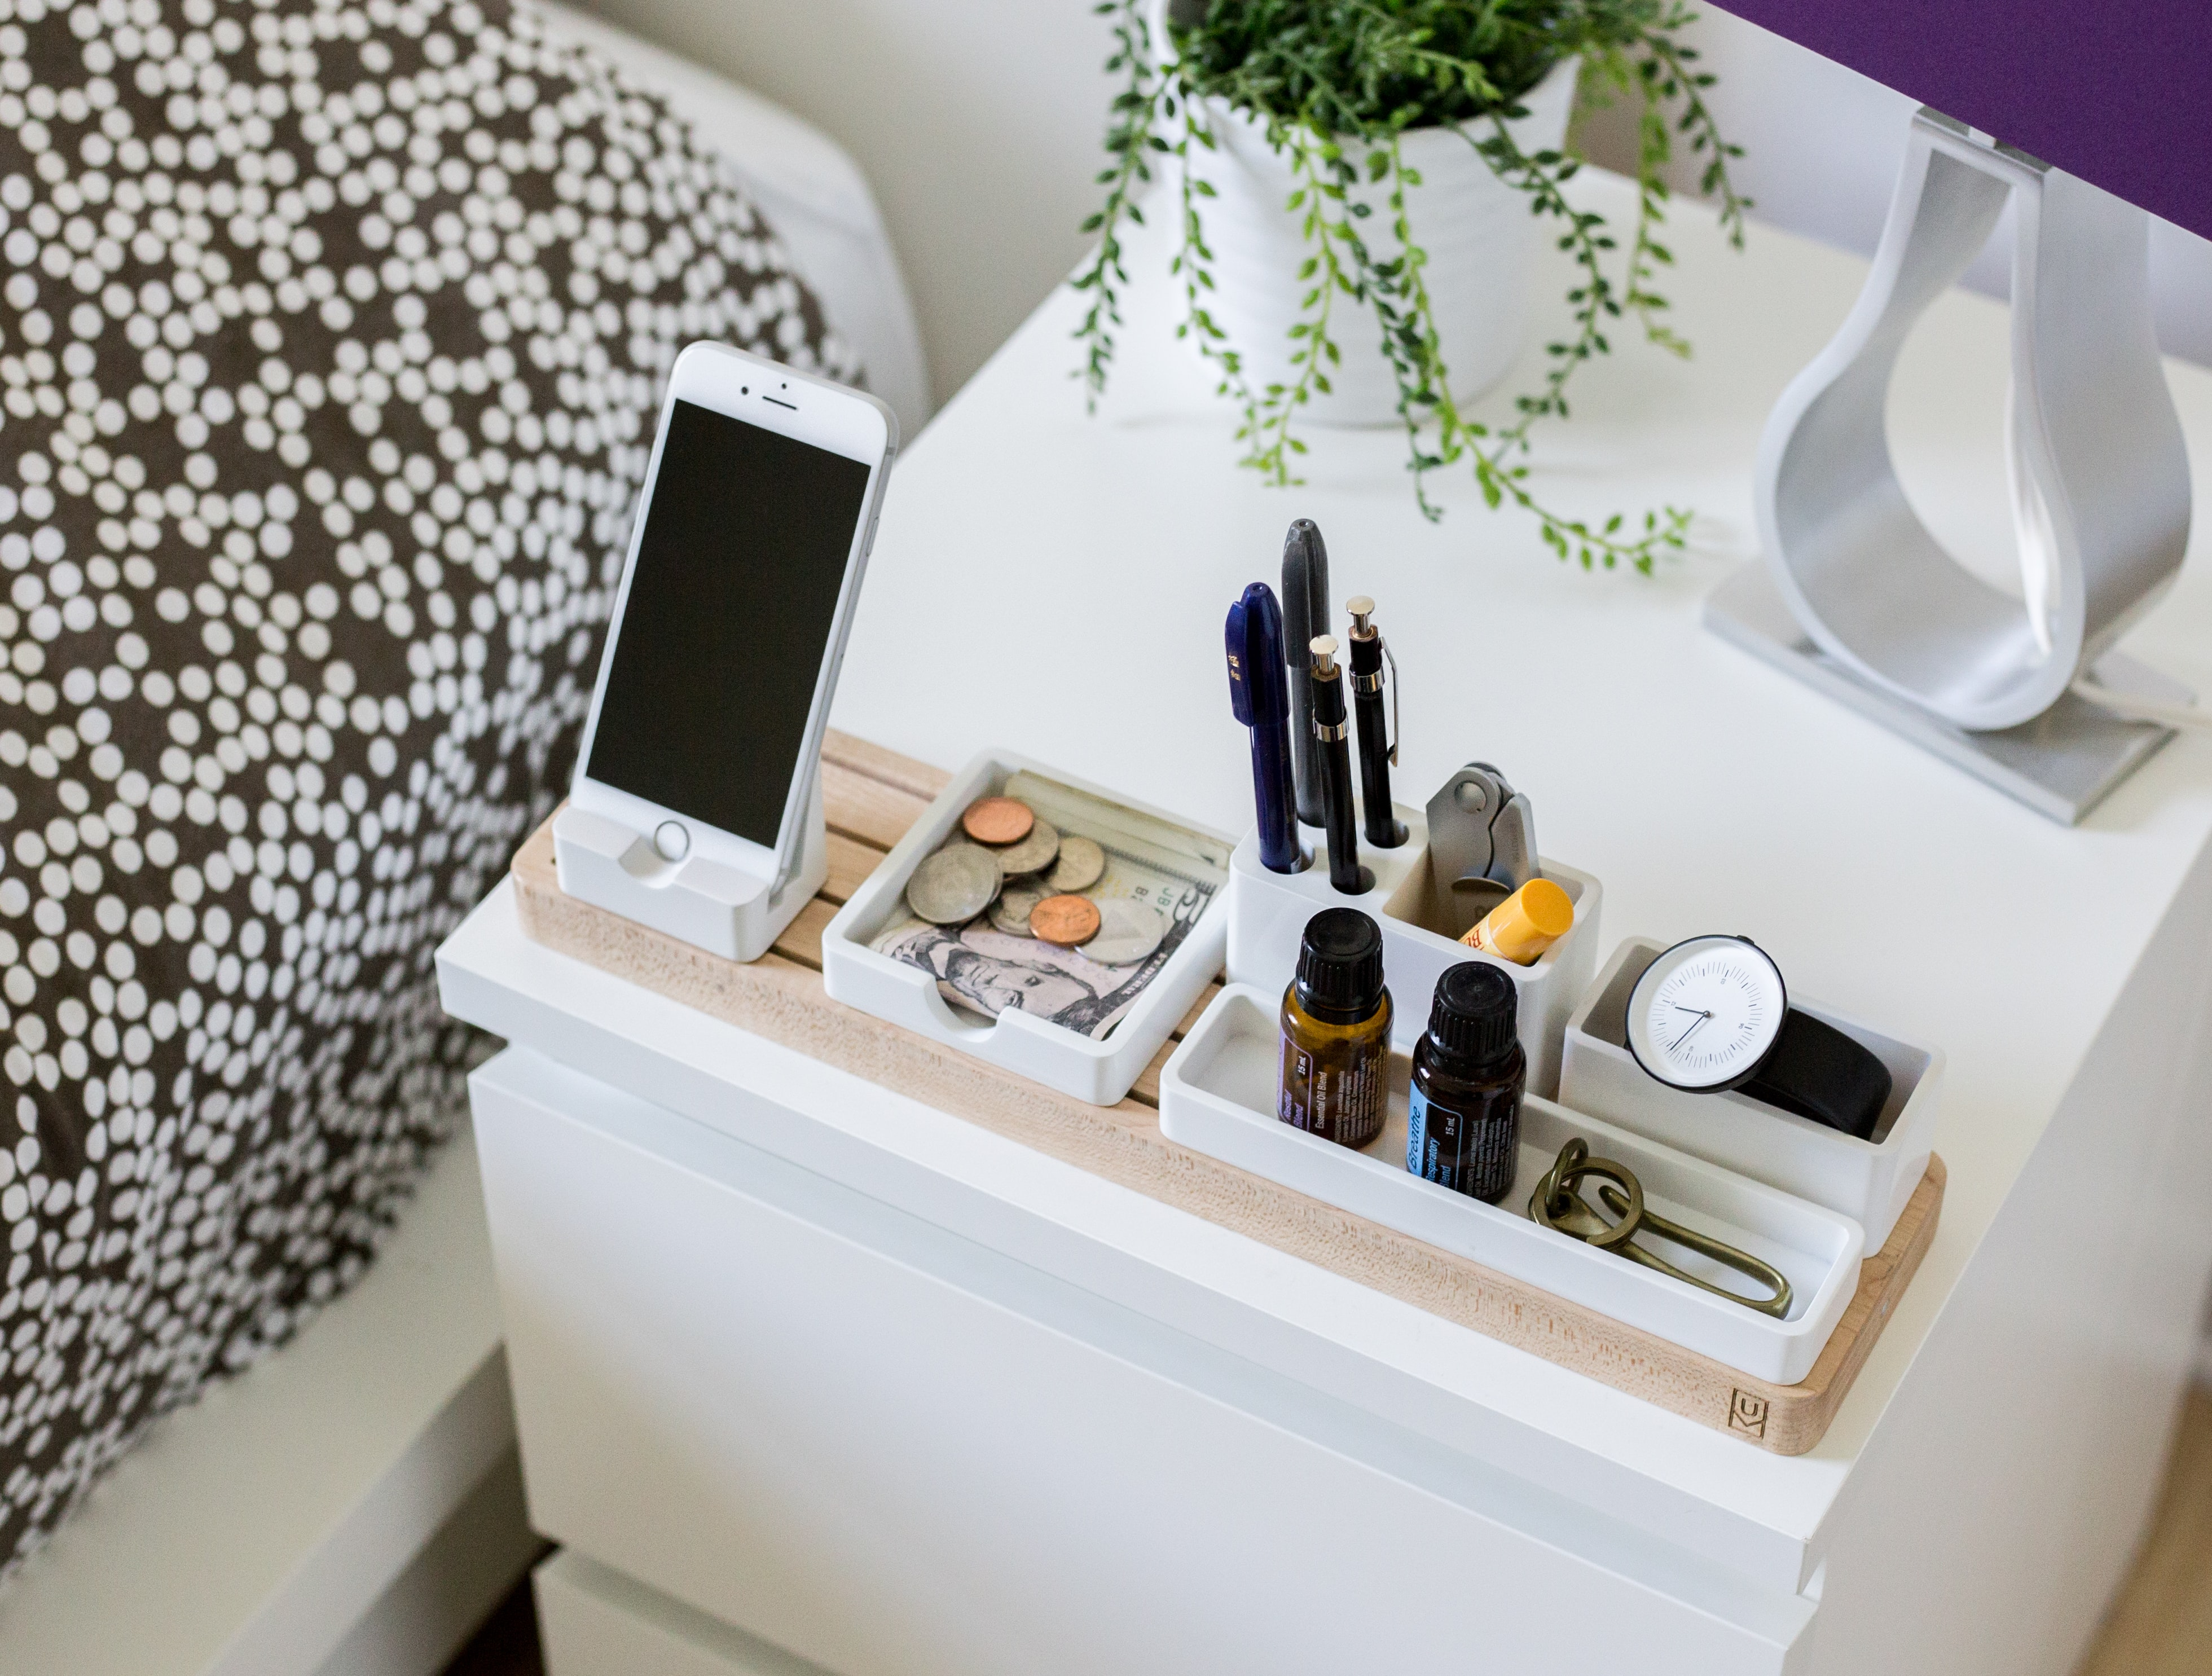 An iPhone, office supplies and a potted plant on a nightstand